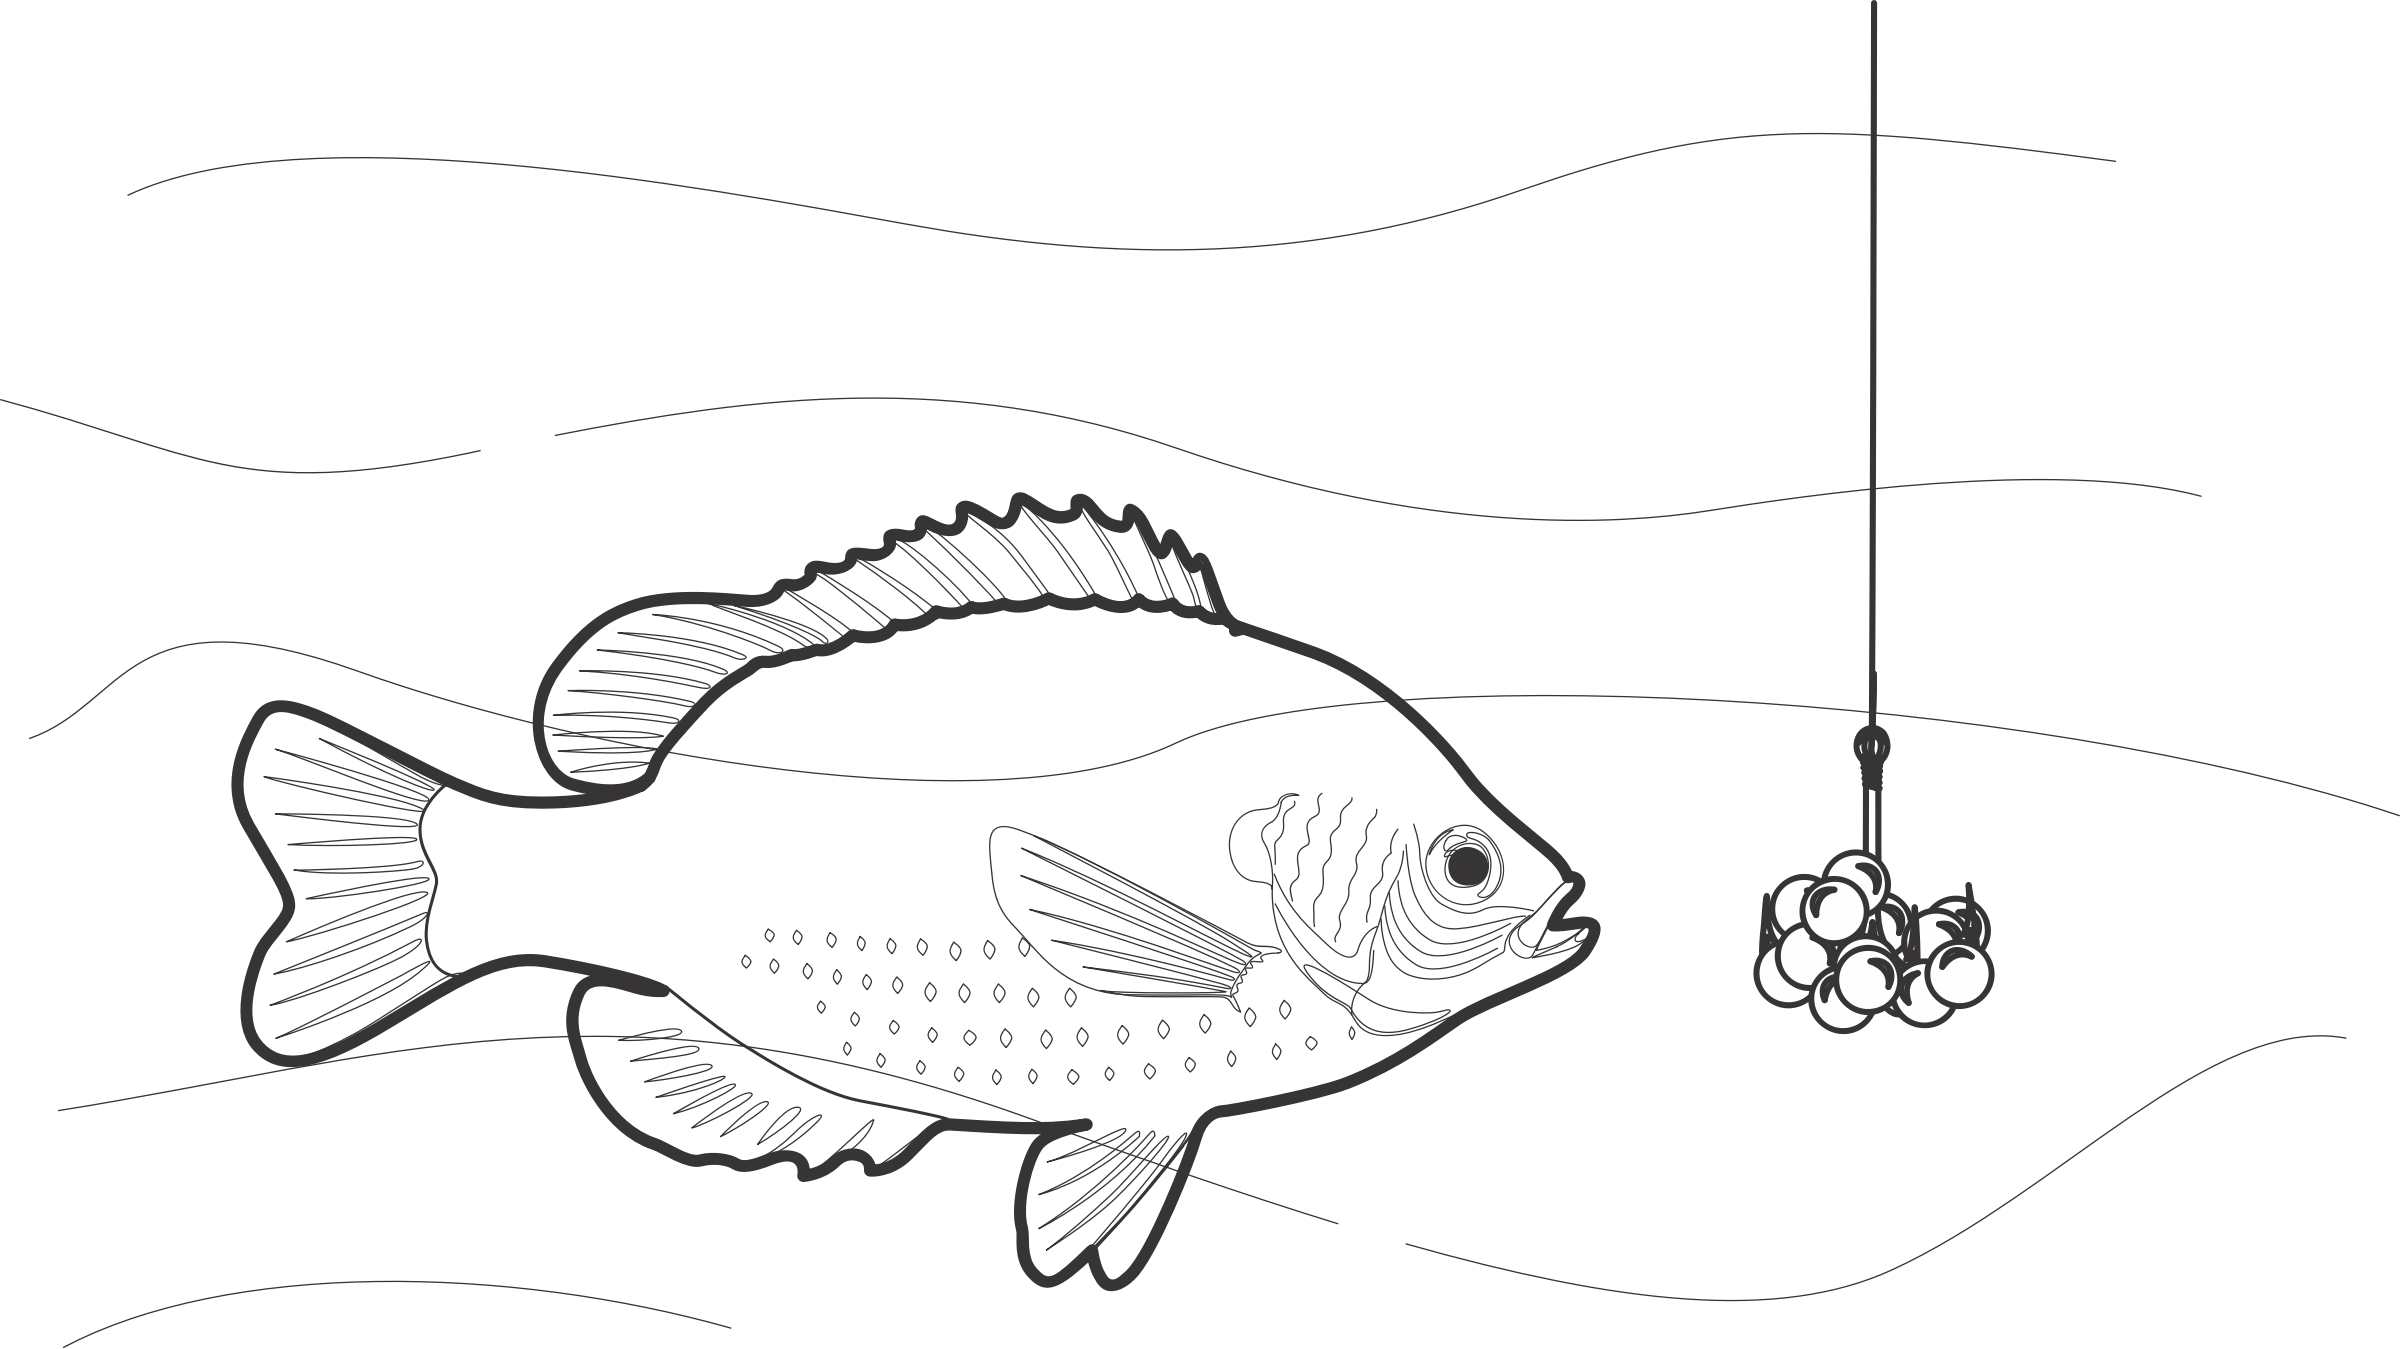 Lure drawing at getdrawings. Worm clipart fishing worm